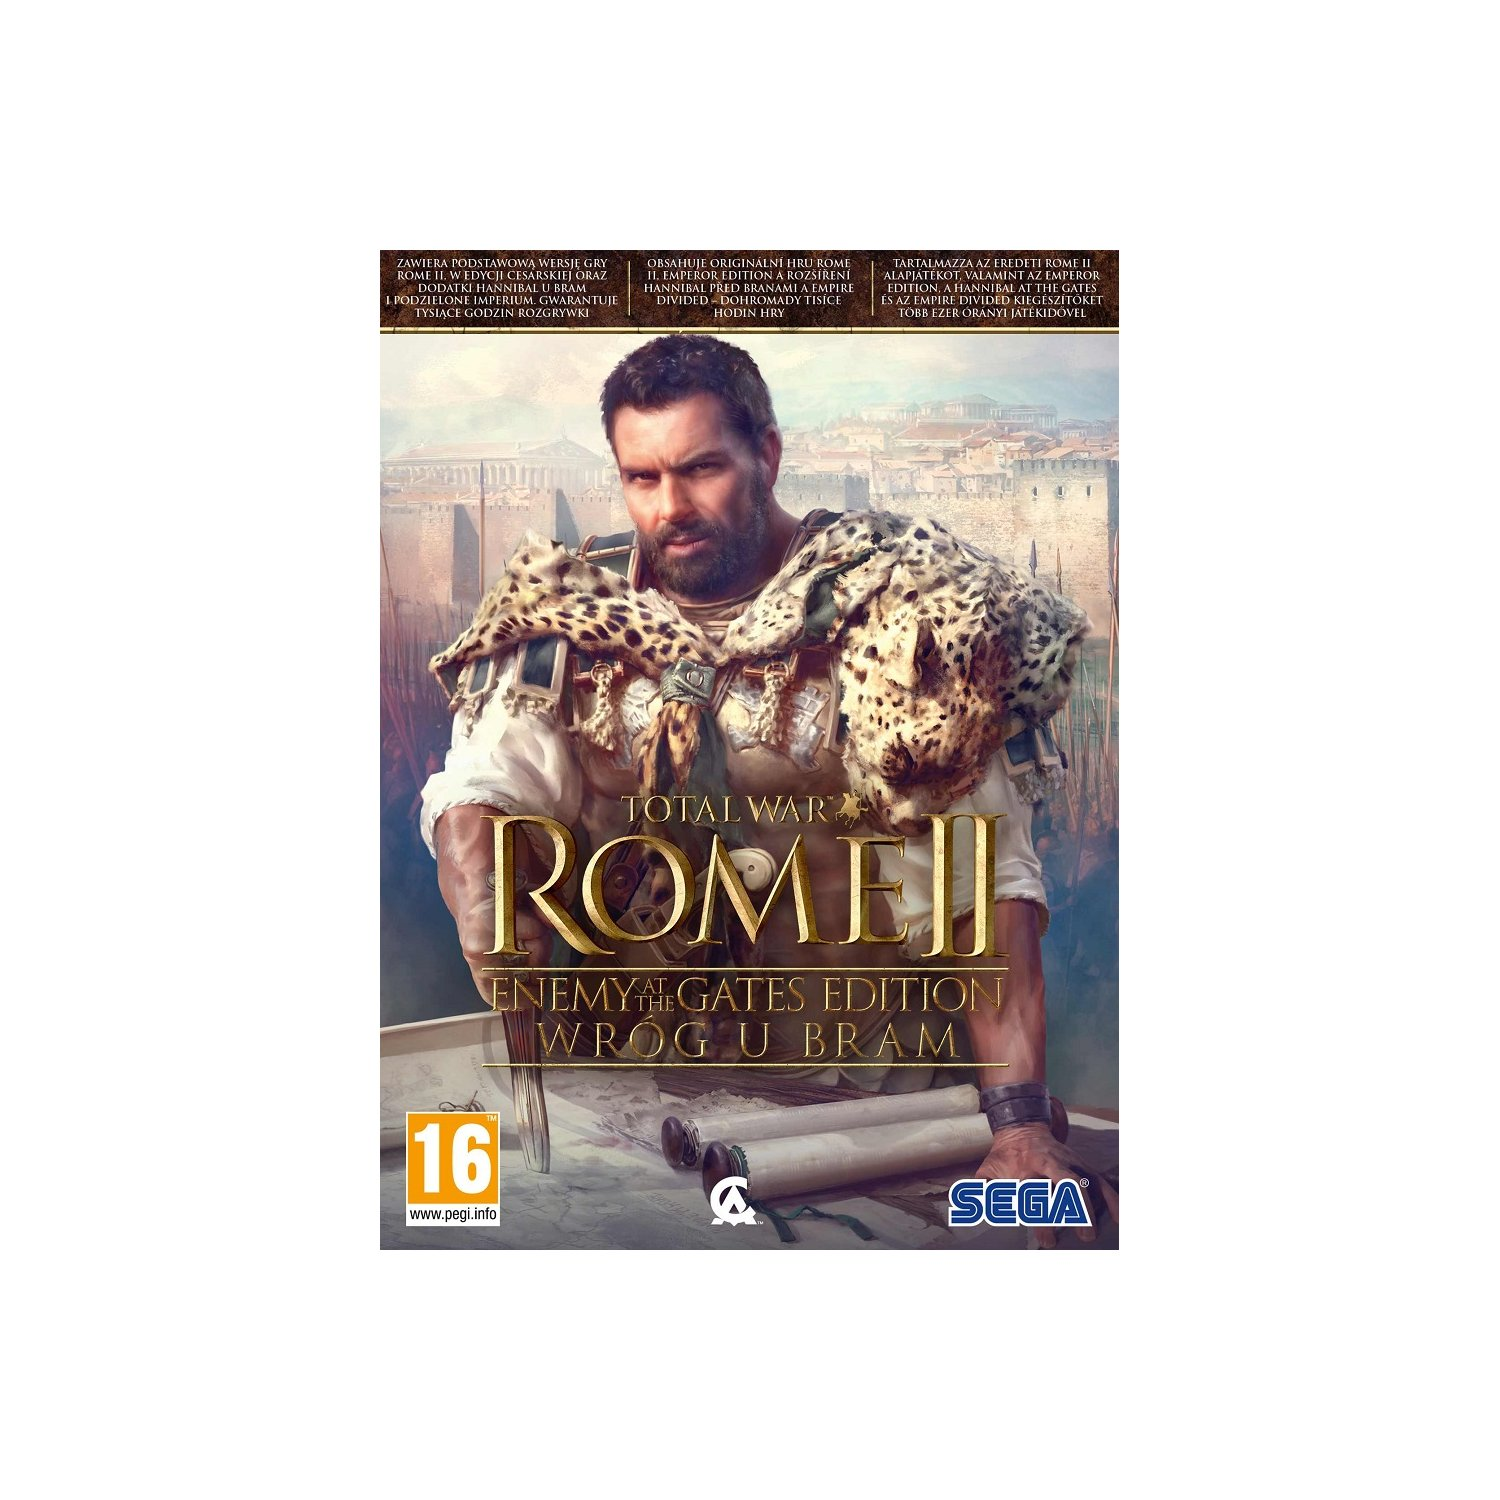 Gra PC Total War: Rome II - Enemy at the Gates Edition - Wróg u bram